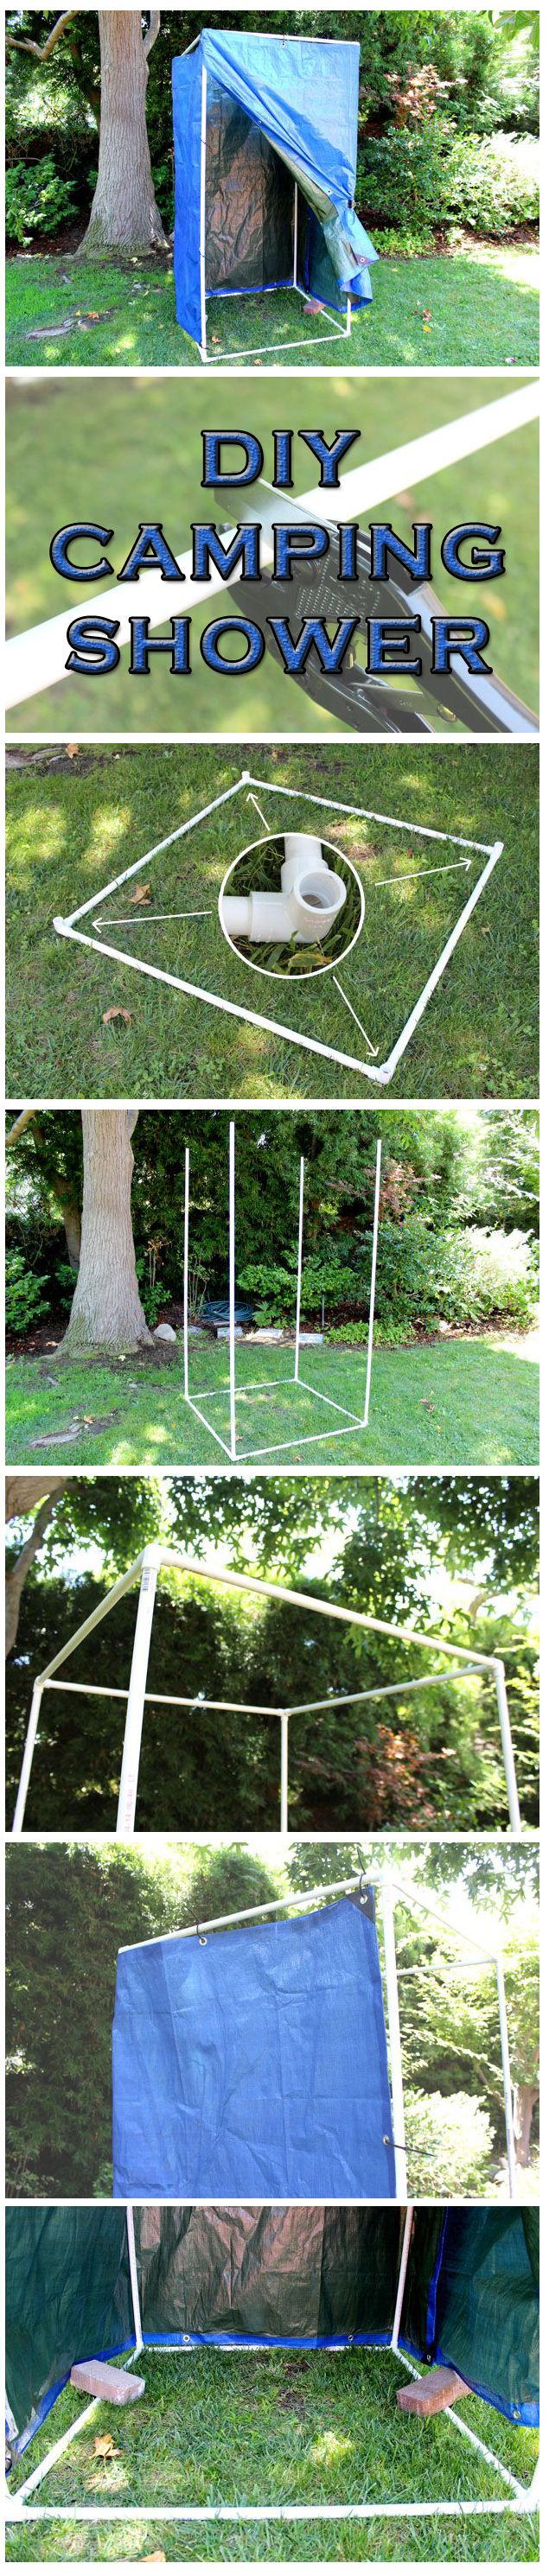 A portable shower that you can take camping with you so you have privacy! Easy to DIY in just 6 steps! Make it even simpler by making it a free standing one.